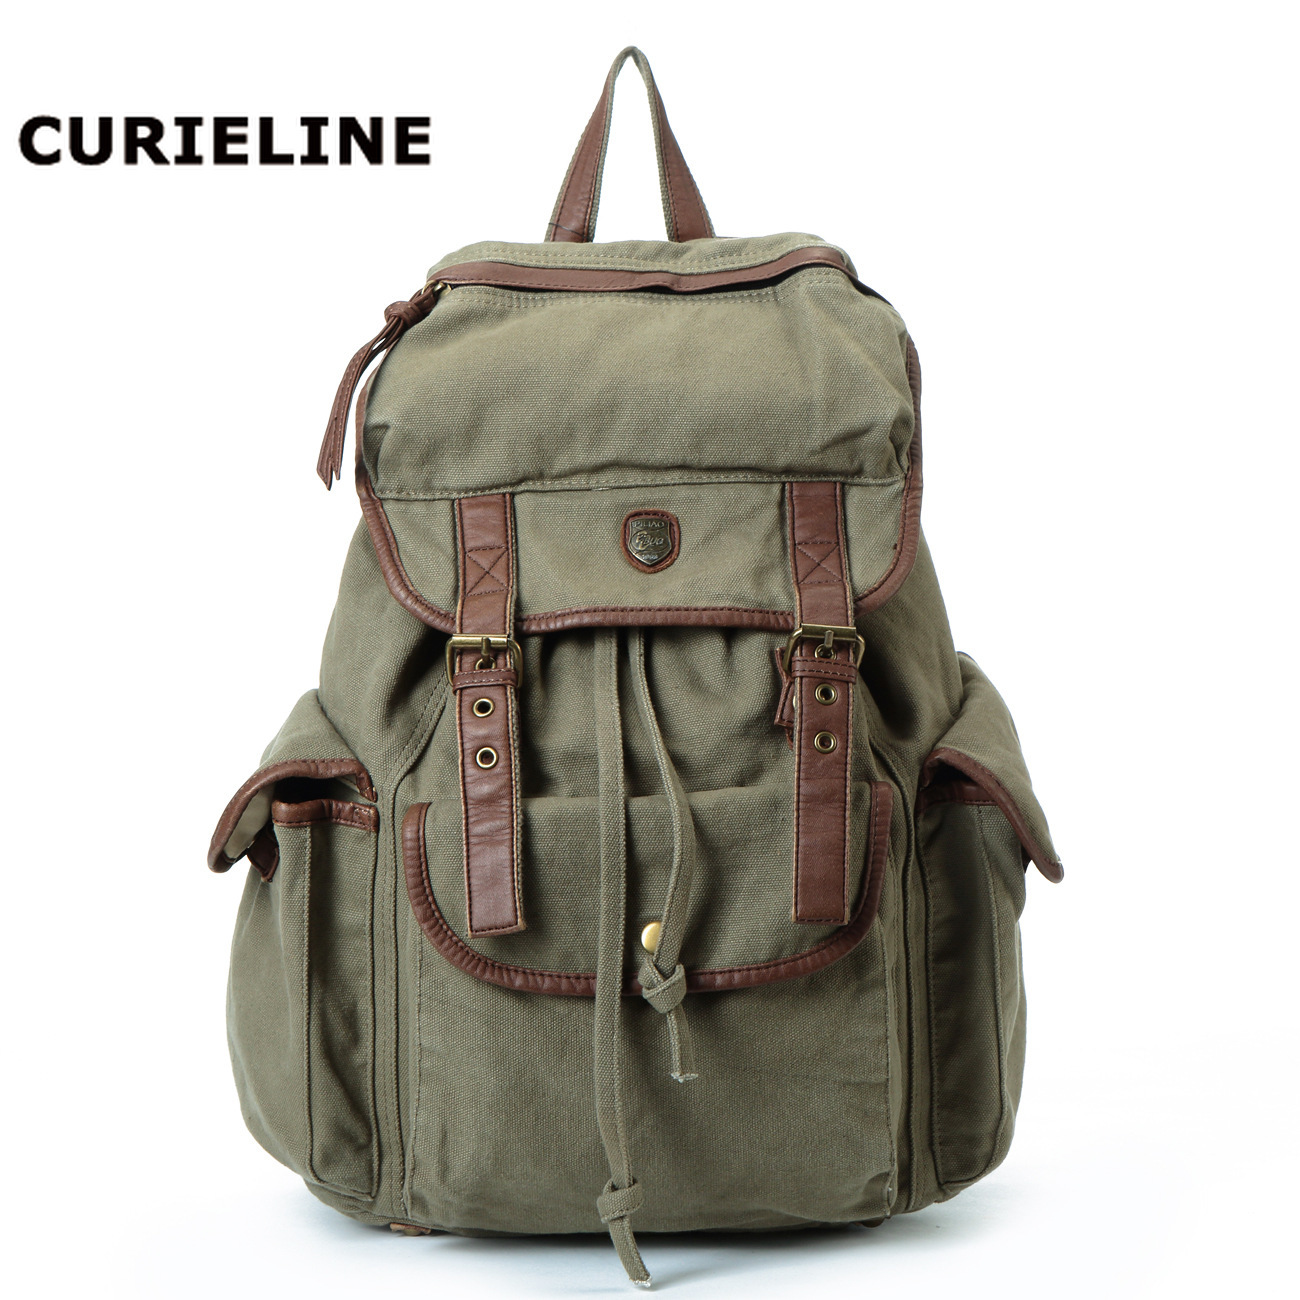 CURIELINE Factory direct sale canvas backpack student bags outdoor large-capacity bags for menCURIELINE Factory direct sale canvas backpack student bags outdoor large-capacity bags for men